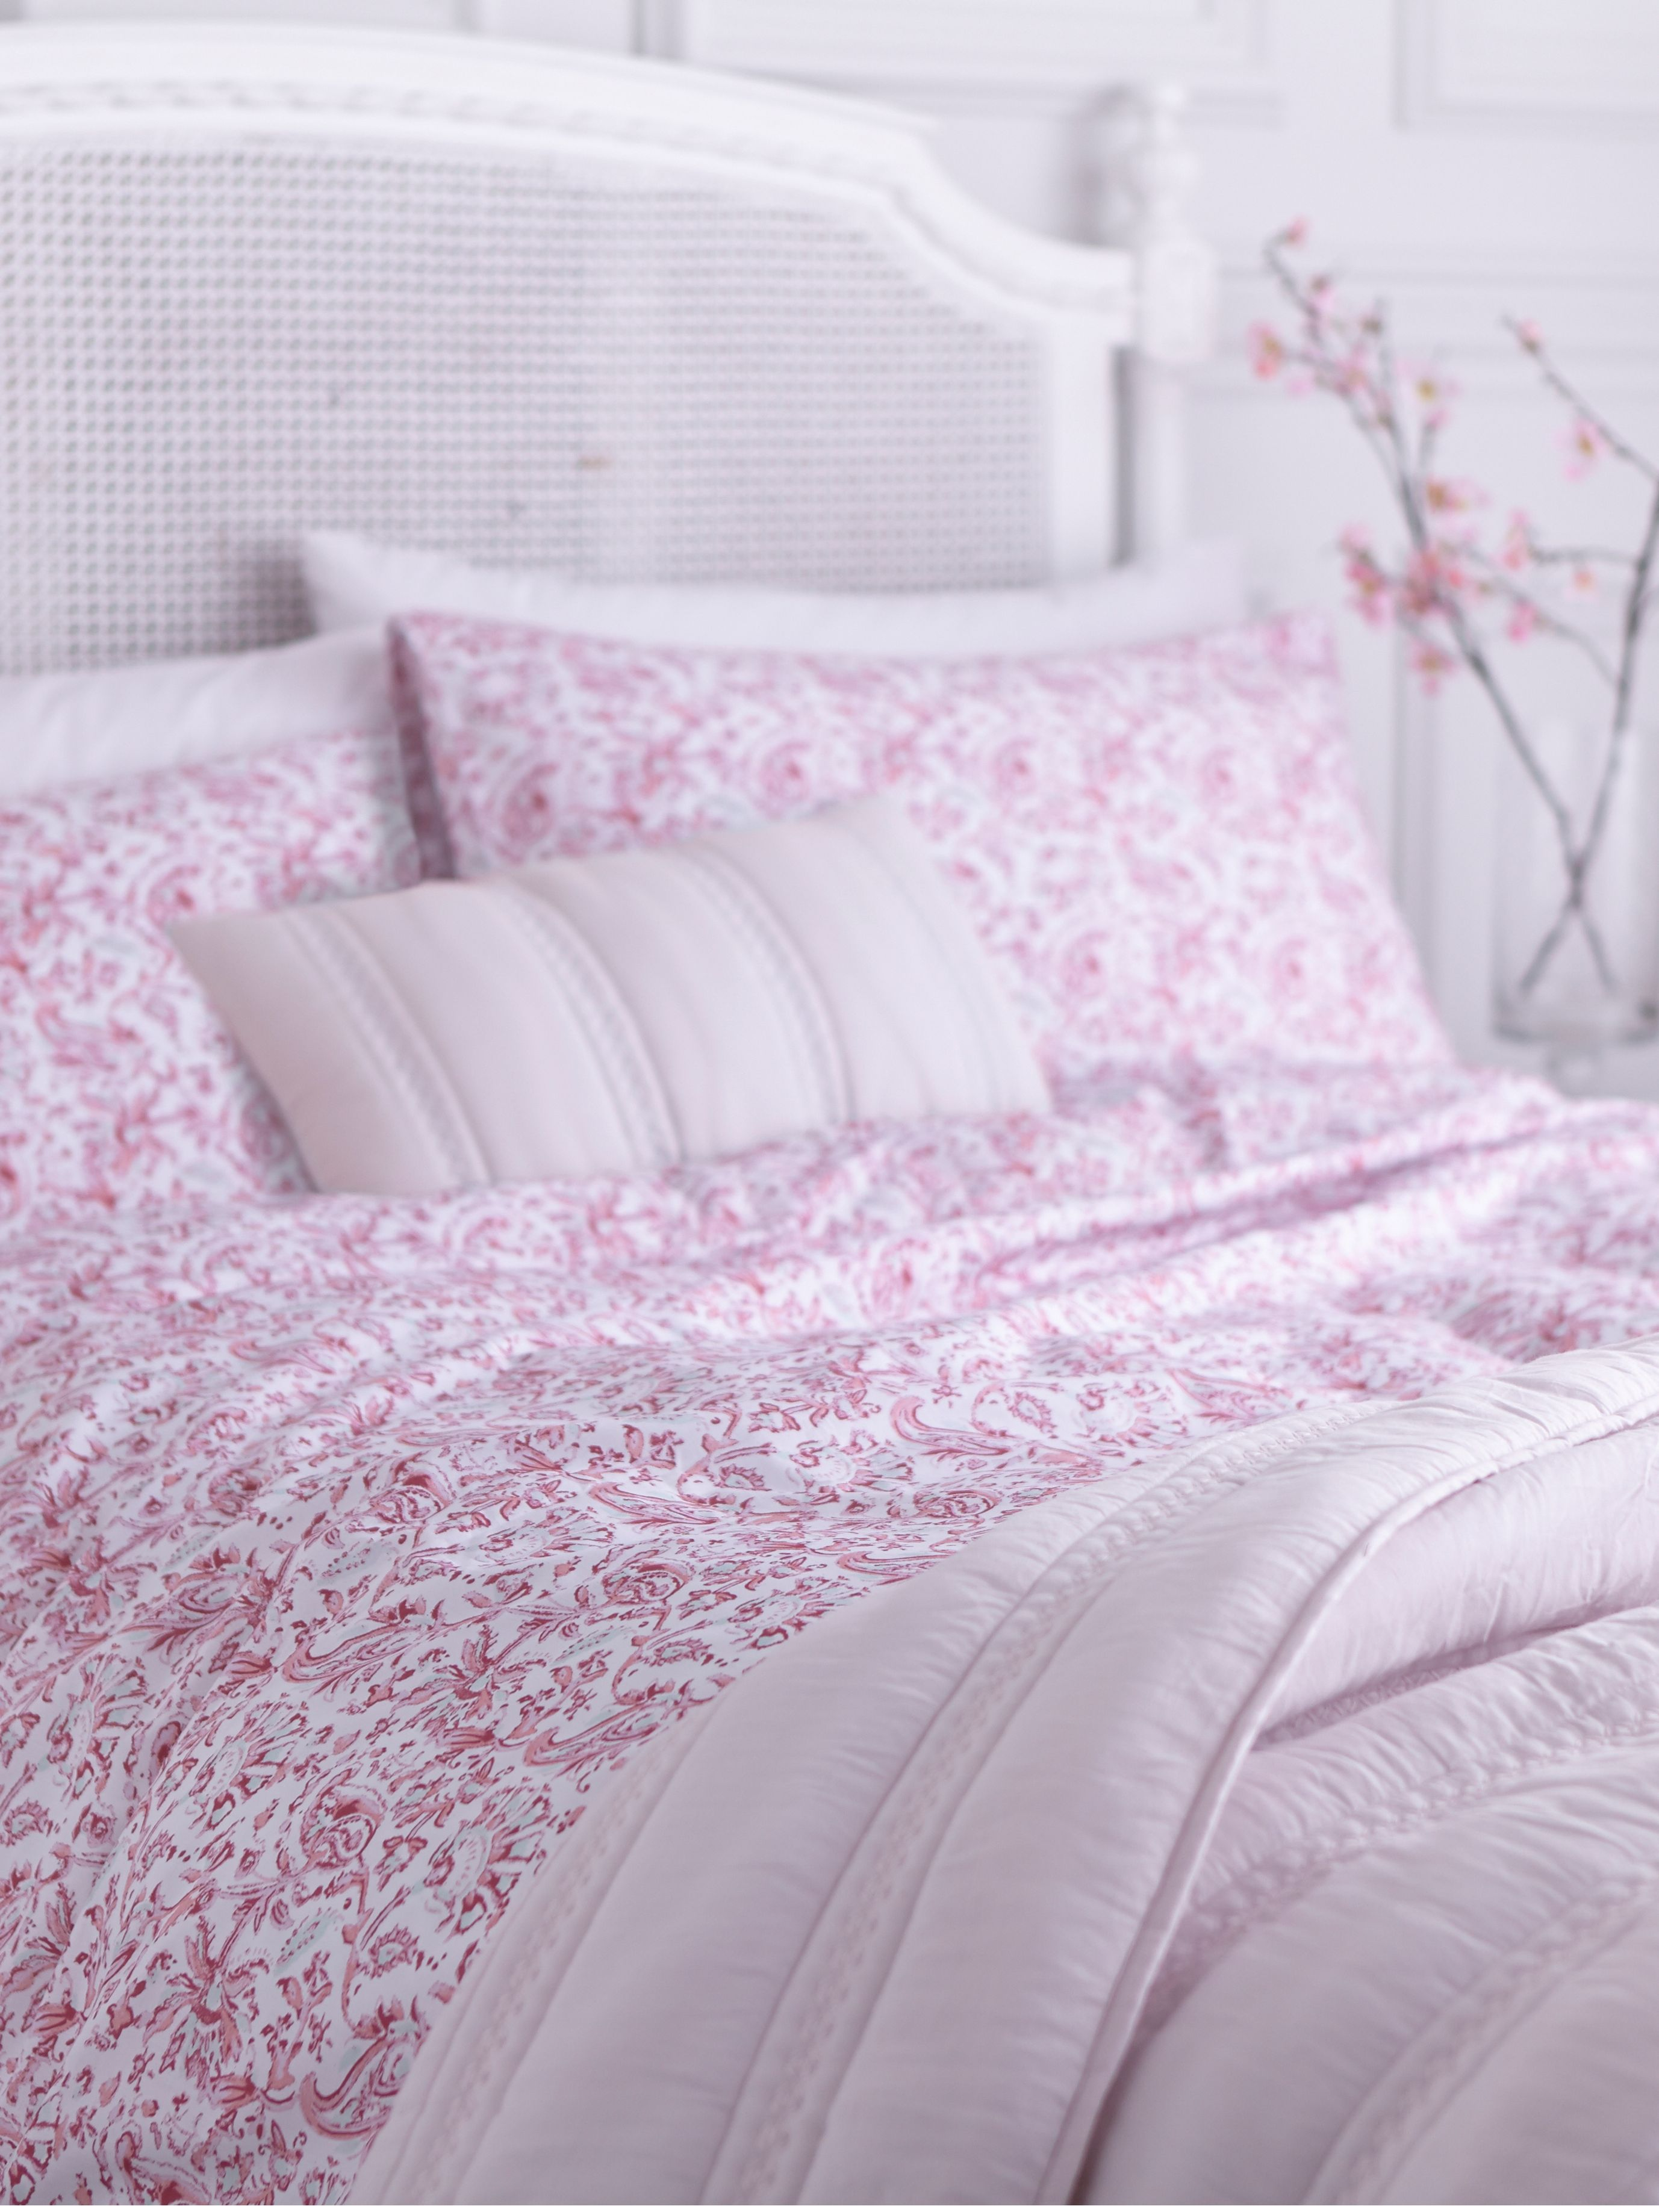 Indes floral double duvet cover